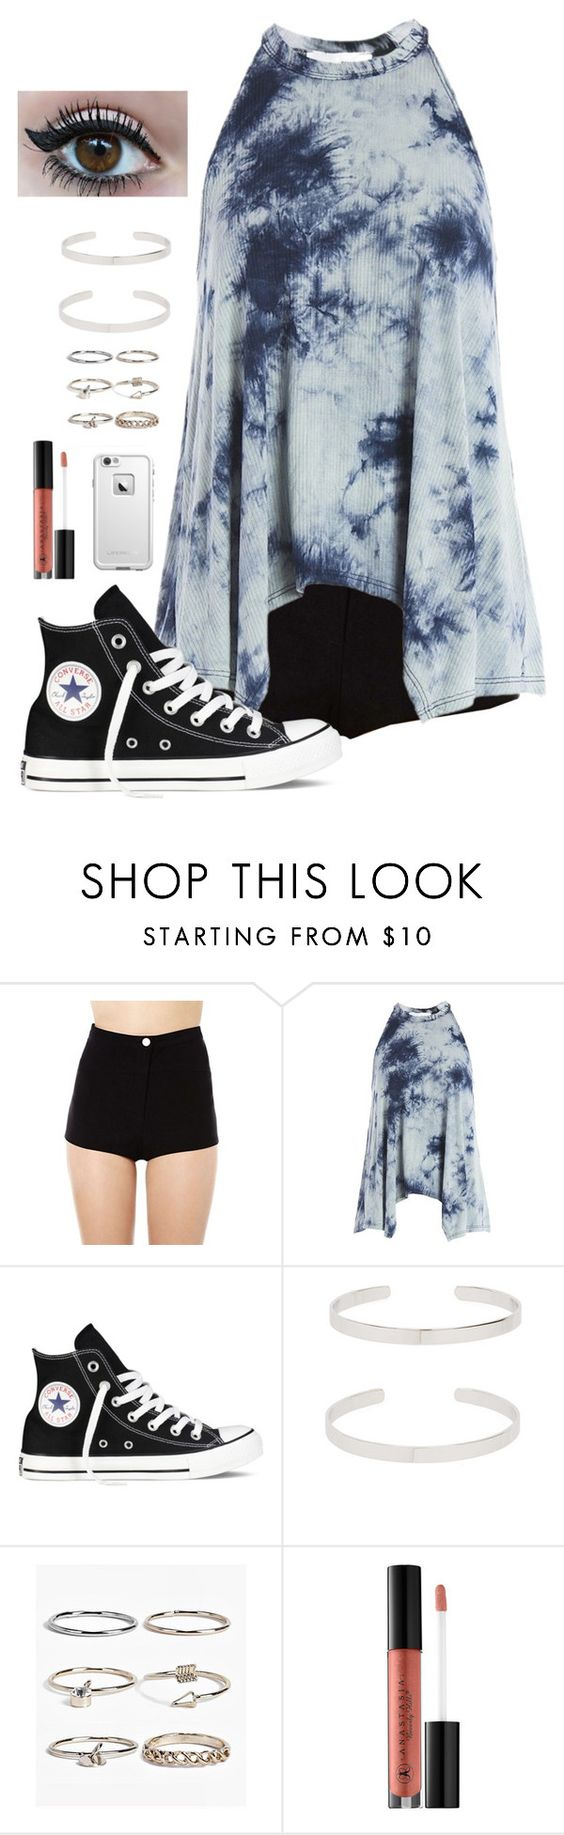 """""""summer time is finally here"""" by sophieelaine on Polyvore featuring Sans Souci, Converse, Vanessa Mooney, Boohoo, Anastasia Beverly Hills and LifeProof"""